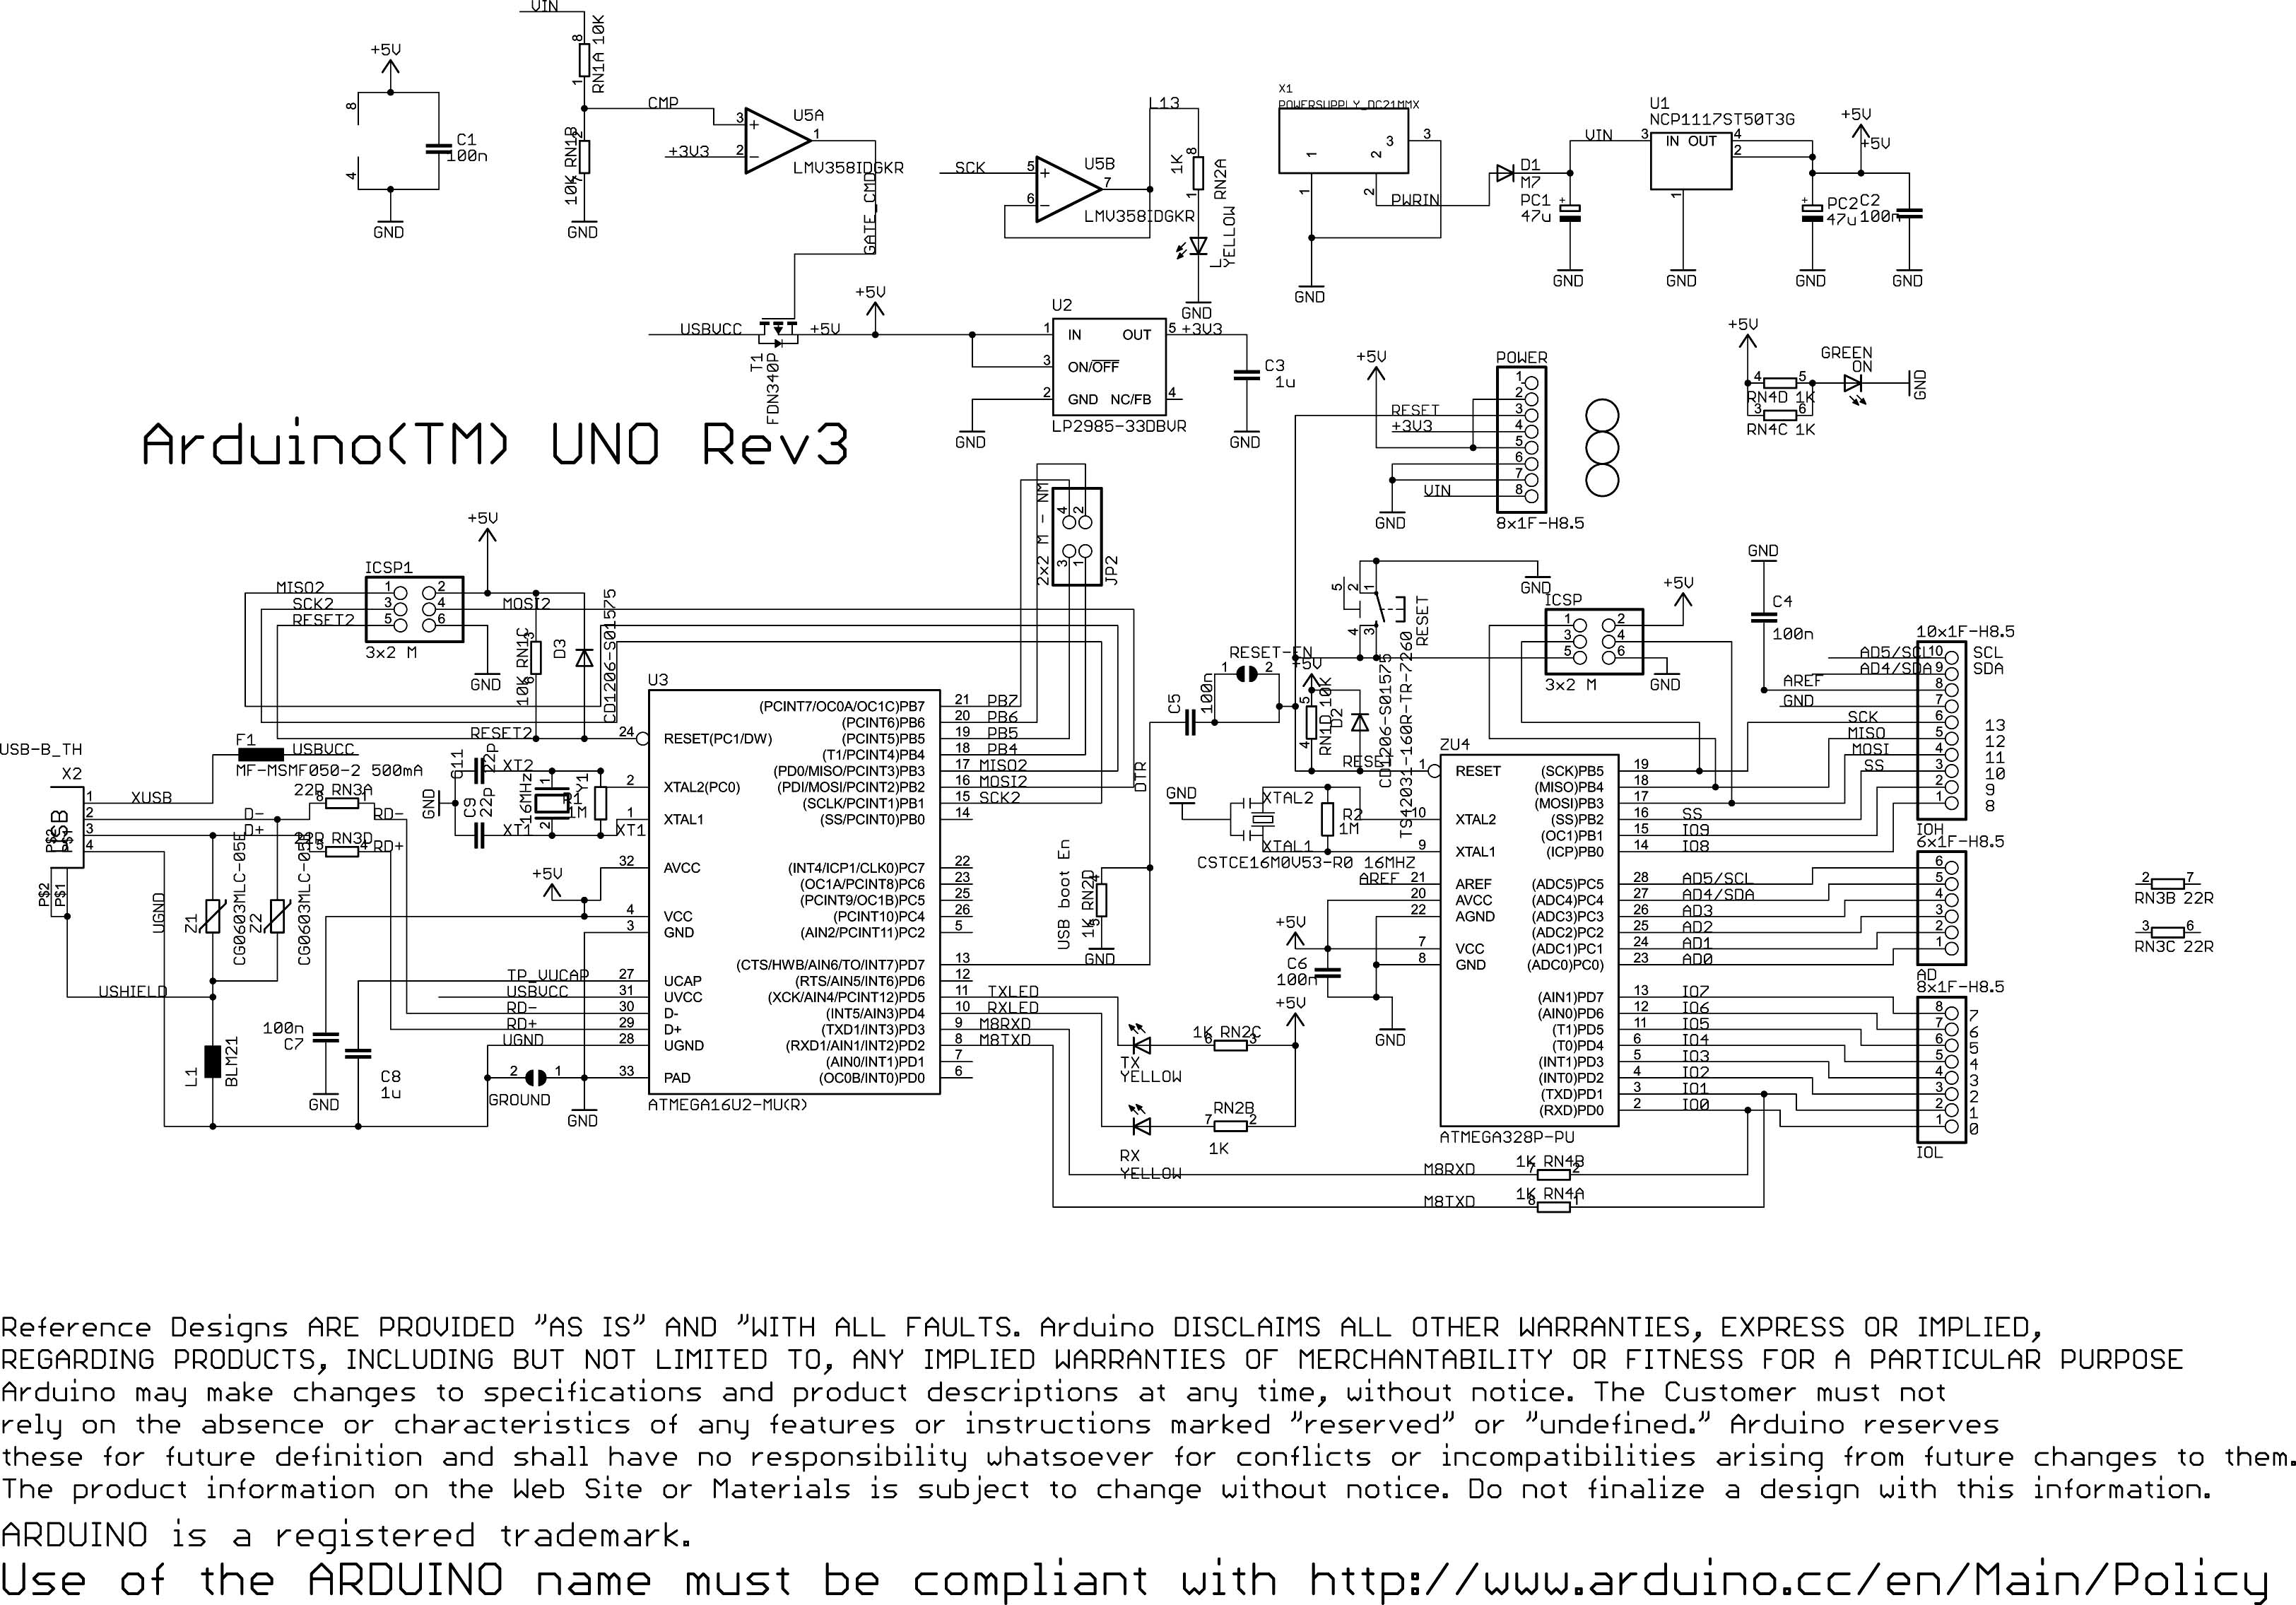 Exploring Microcontrolers part 3 on 5x5x5 led cube schematic, jameco led cube schematic, cut airplane schematic, led matrix schematic, 4x4x4 led cube schematic, 3x3x3 led cube schematic,